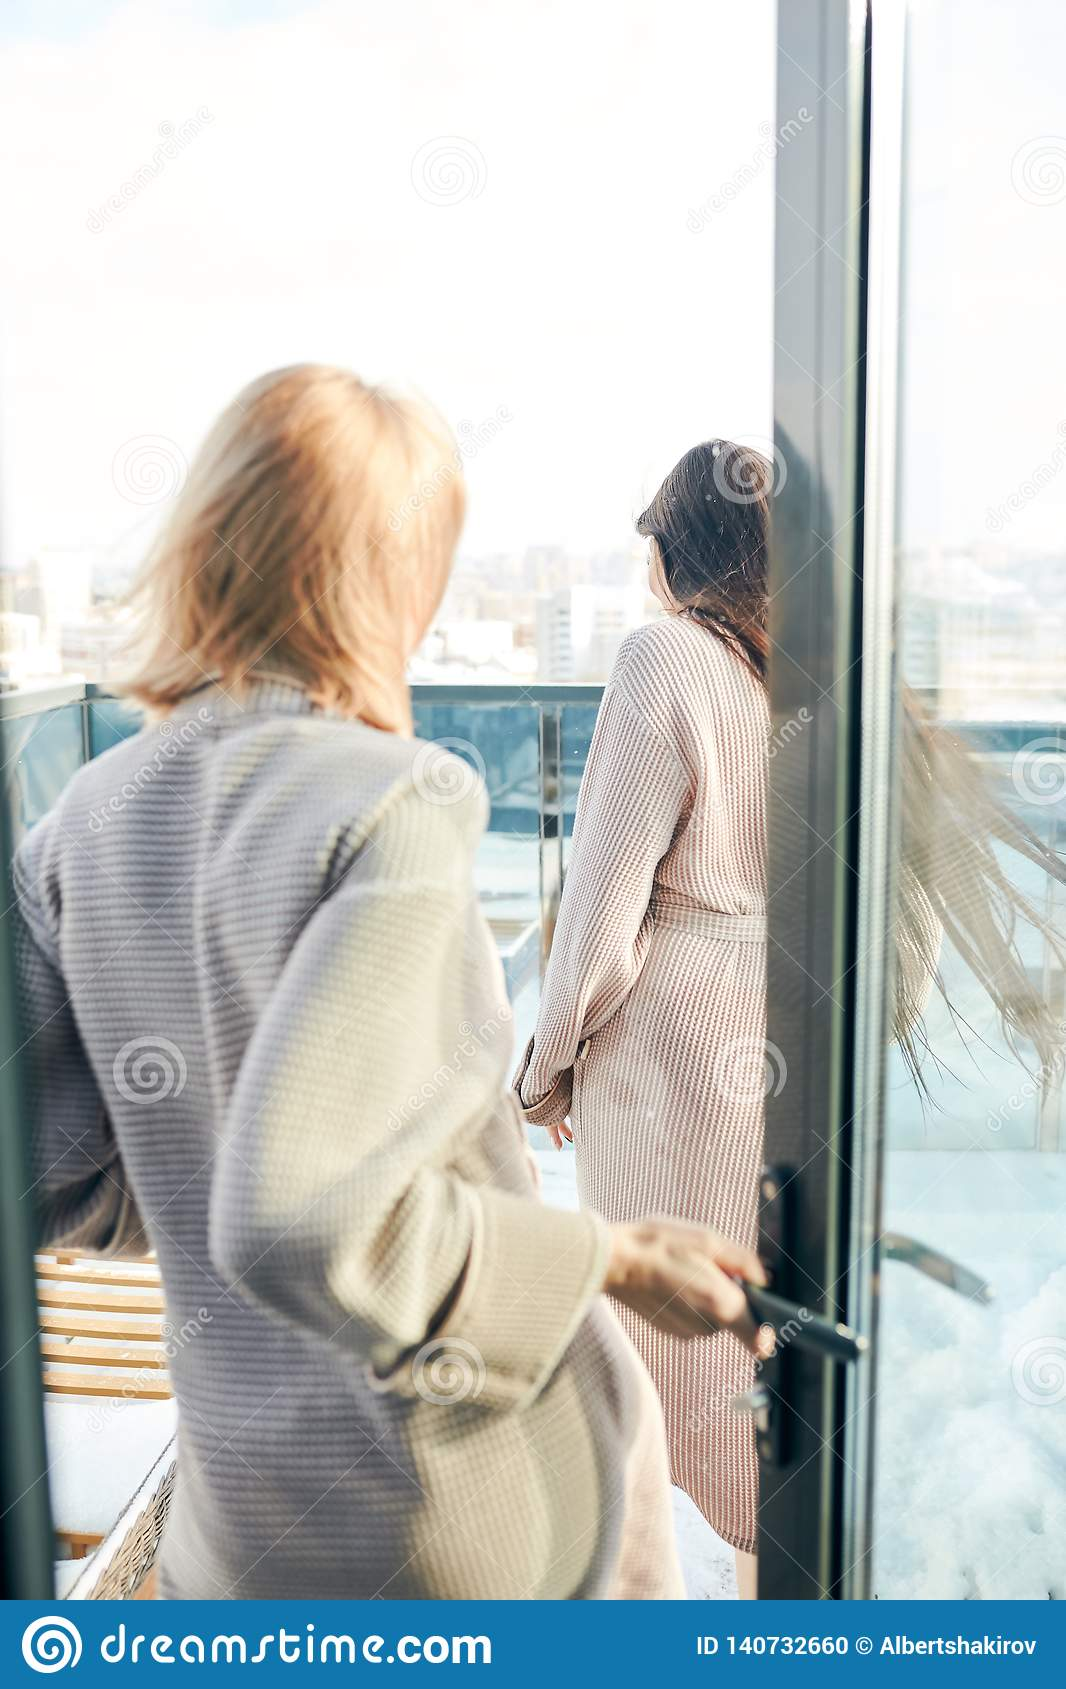 Two women standing in bathrobe on outdoor terrace with winter snowy cityscape